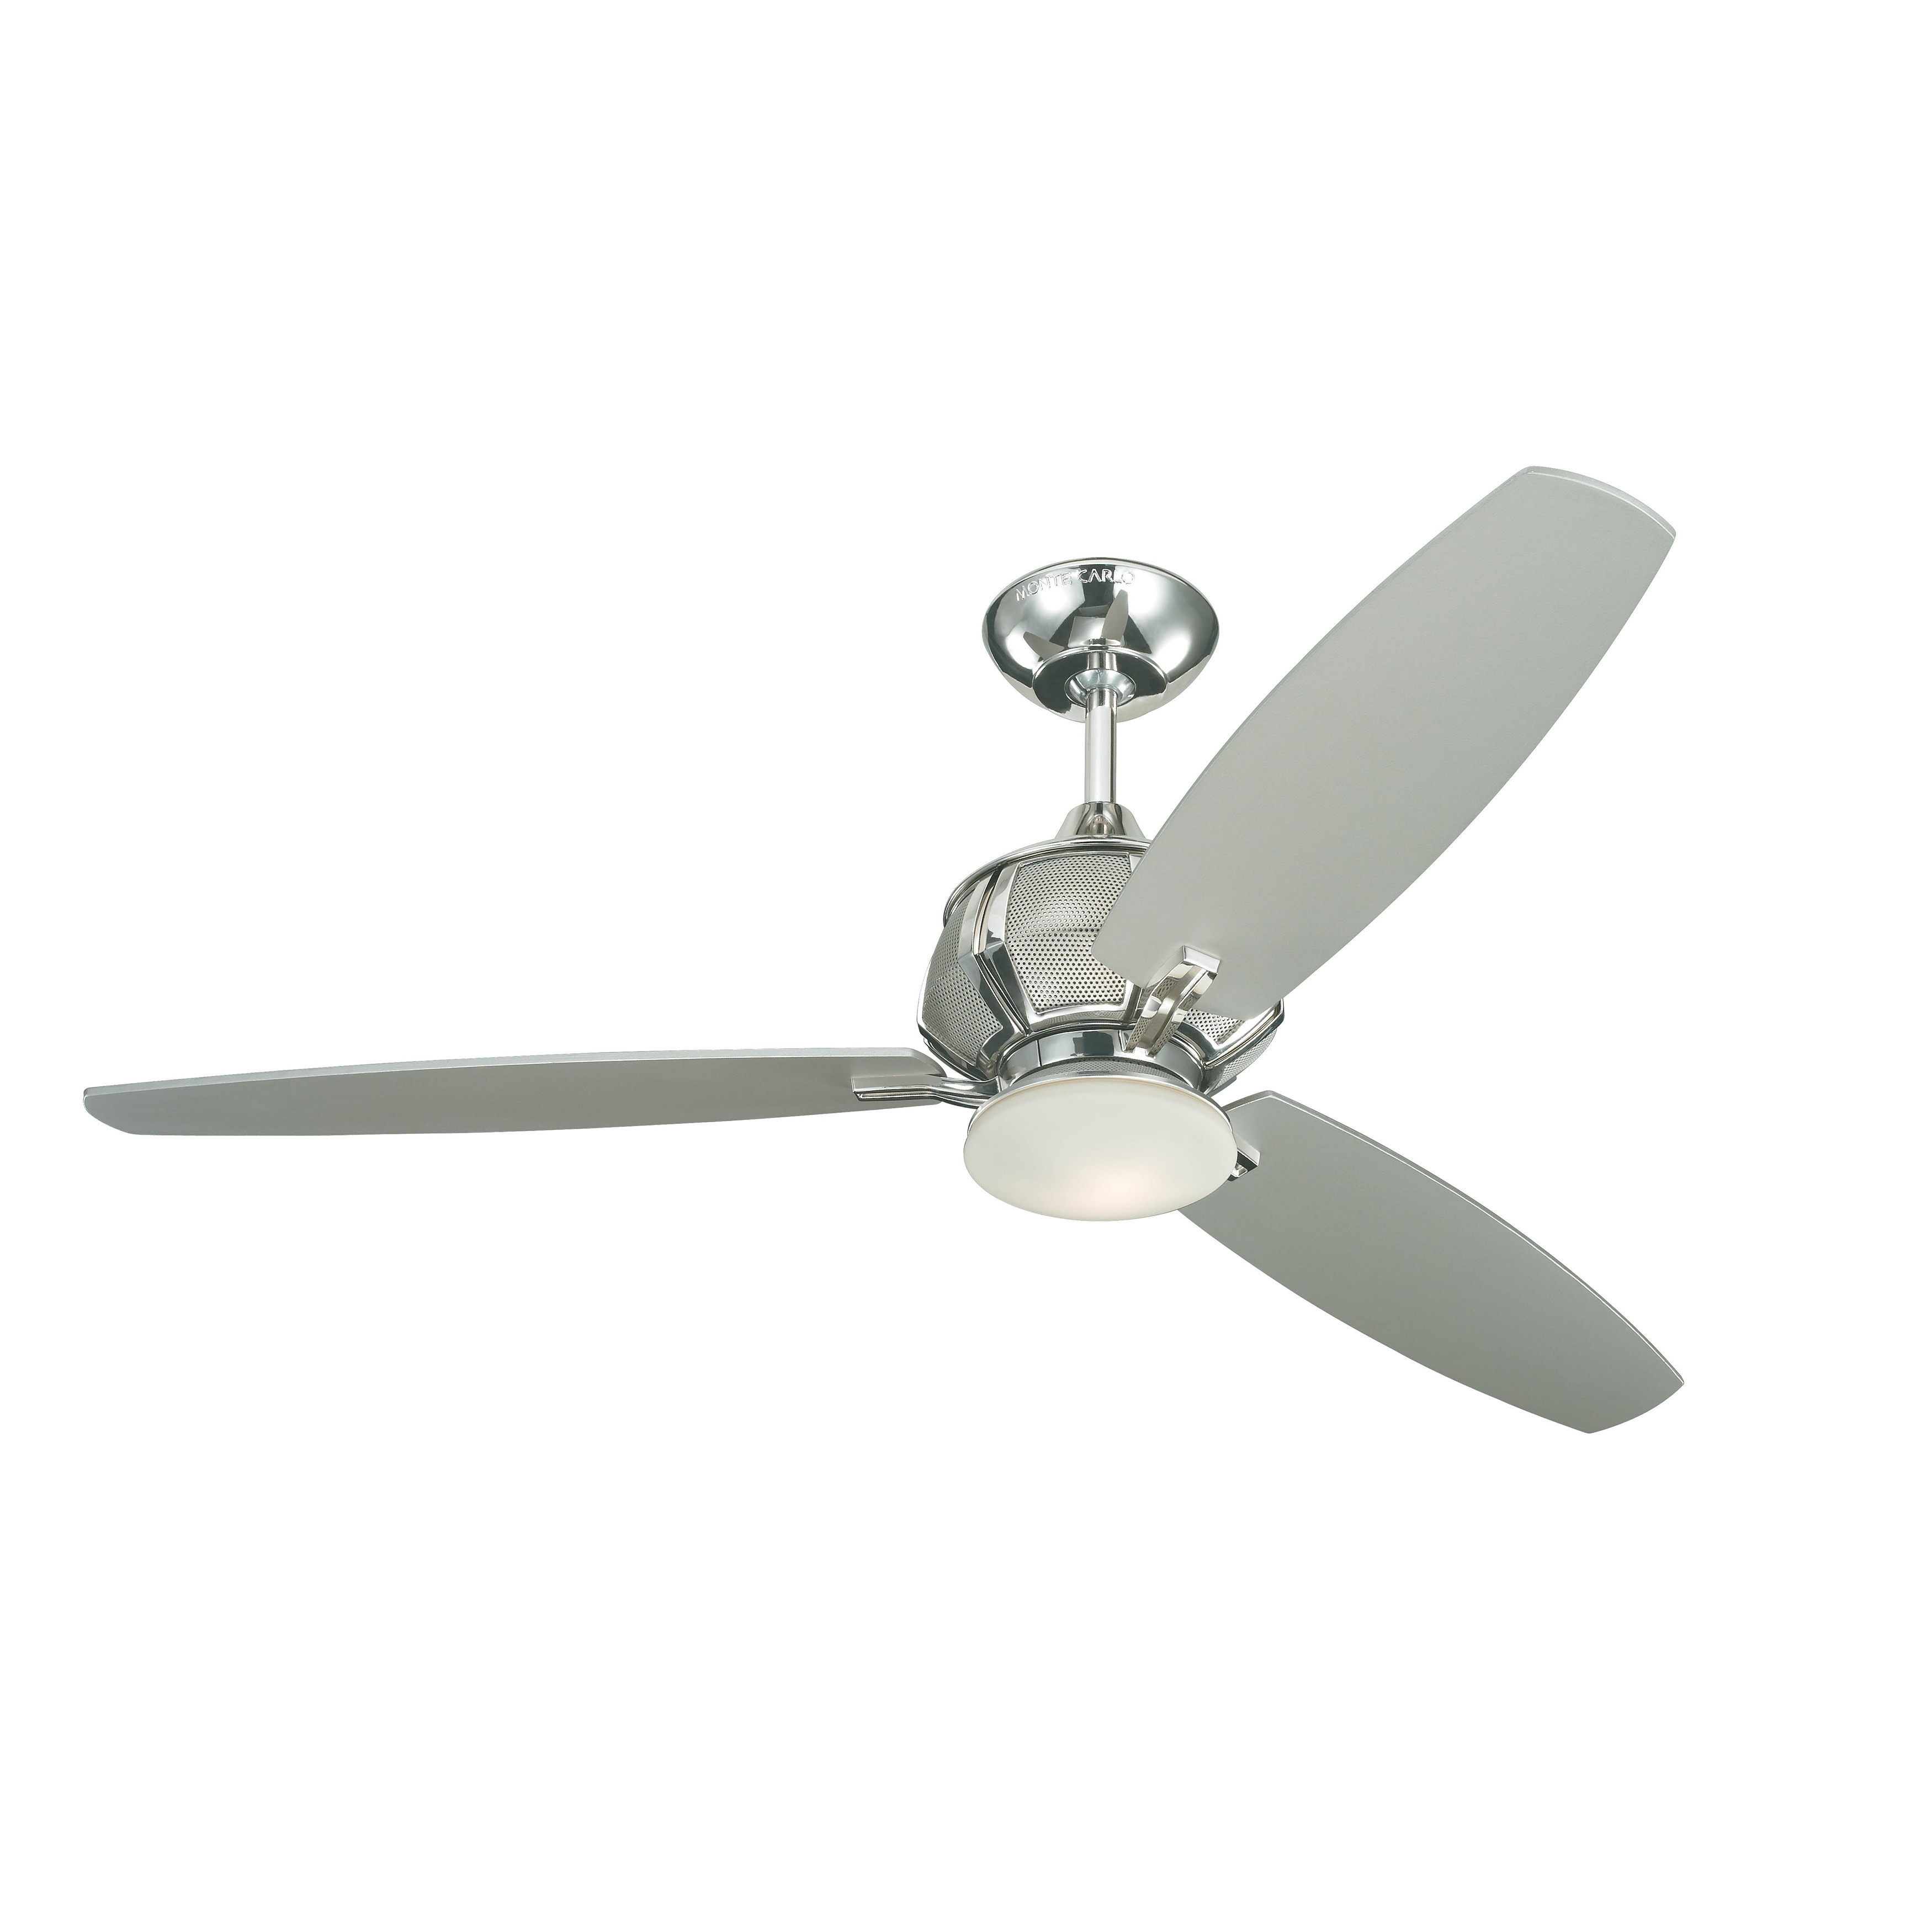 Monte Carlo Acura Polished Nickel 52-inch 3-blade Ceiling Fan at Sears.com